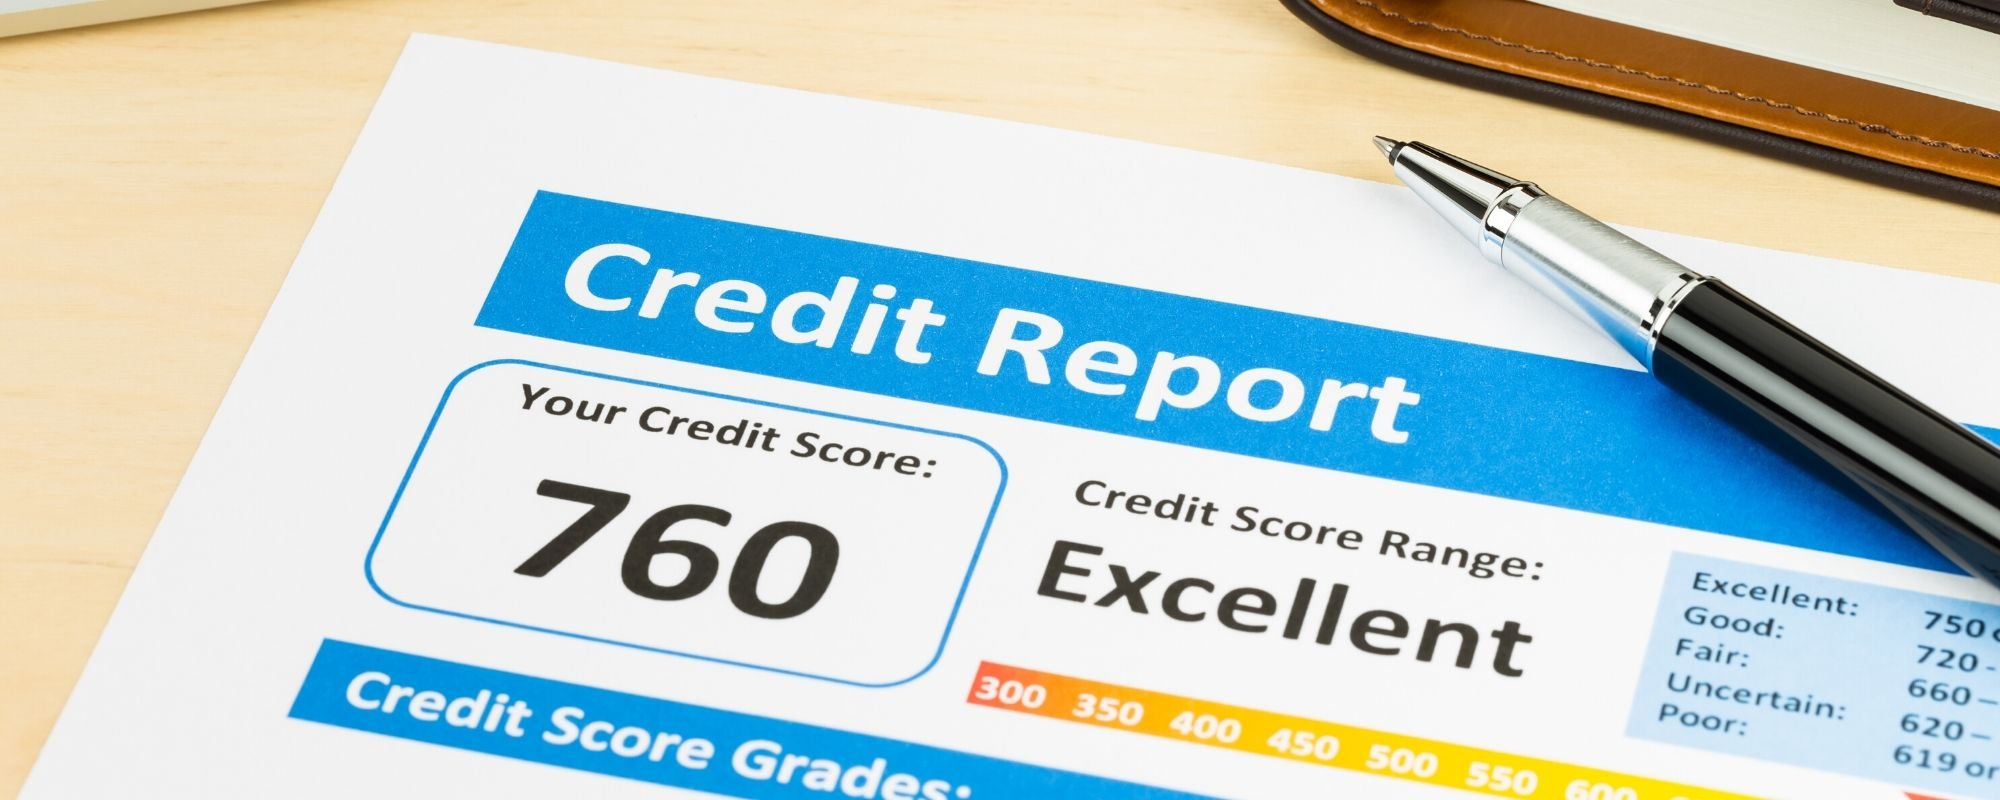 What Matters Most on a Credit Report - Casper1774Studio